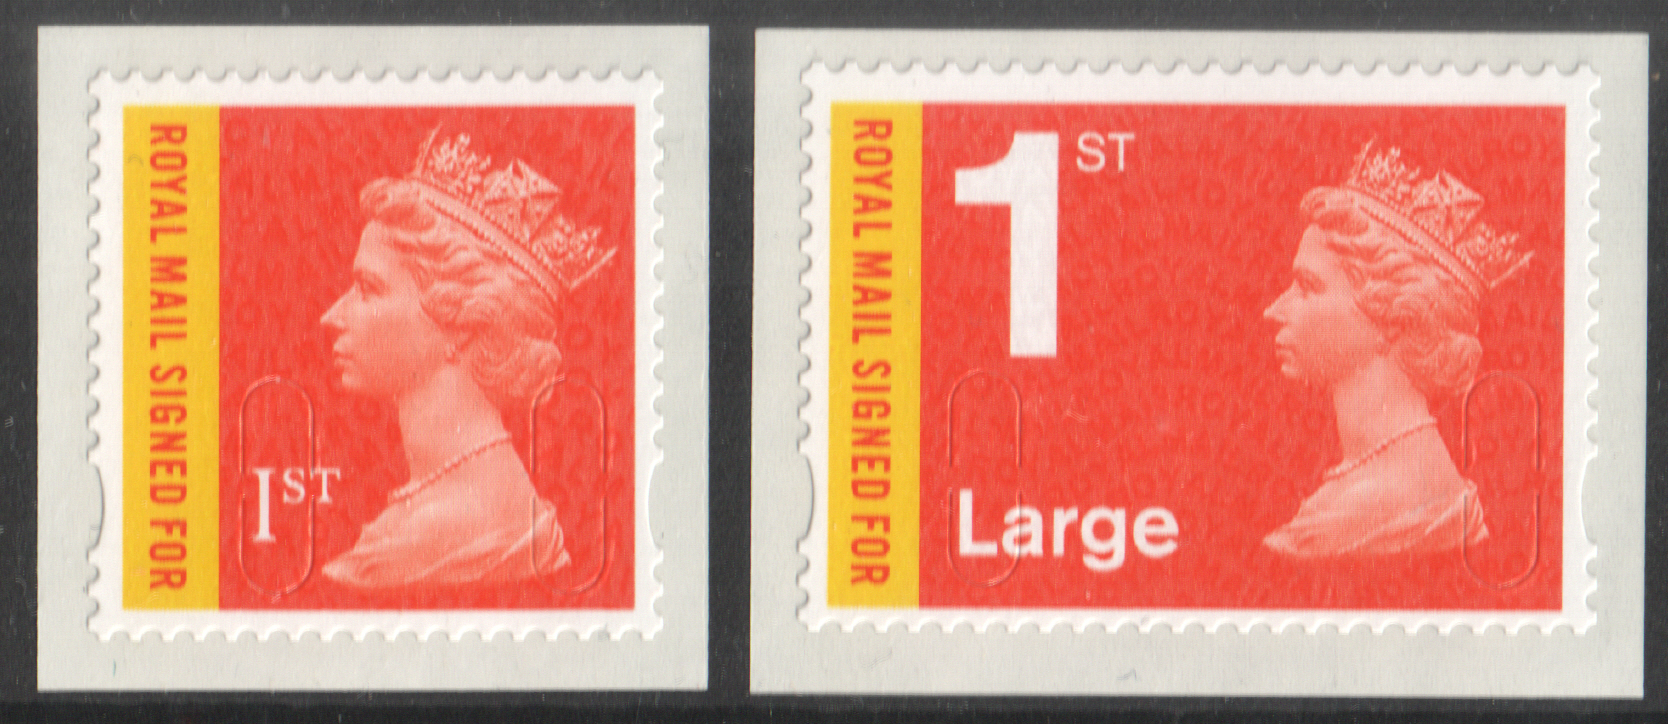 U3049 / 50 Royal Mail Signed For MA13 1st Class & 1st Large Unmounted Mint